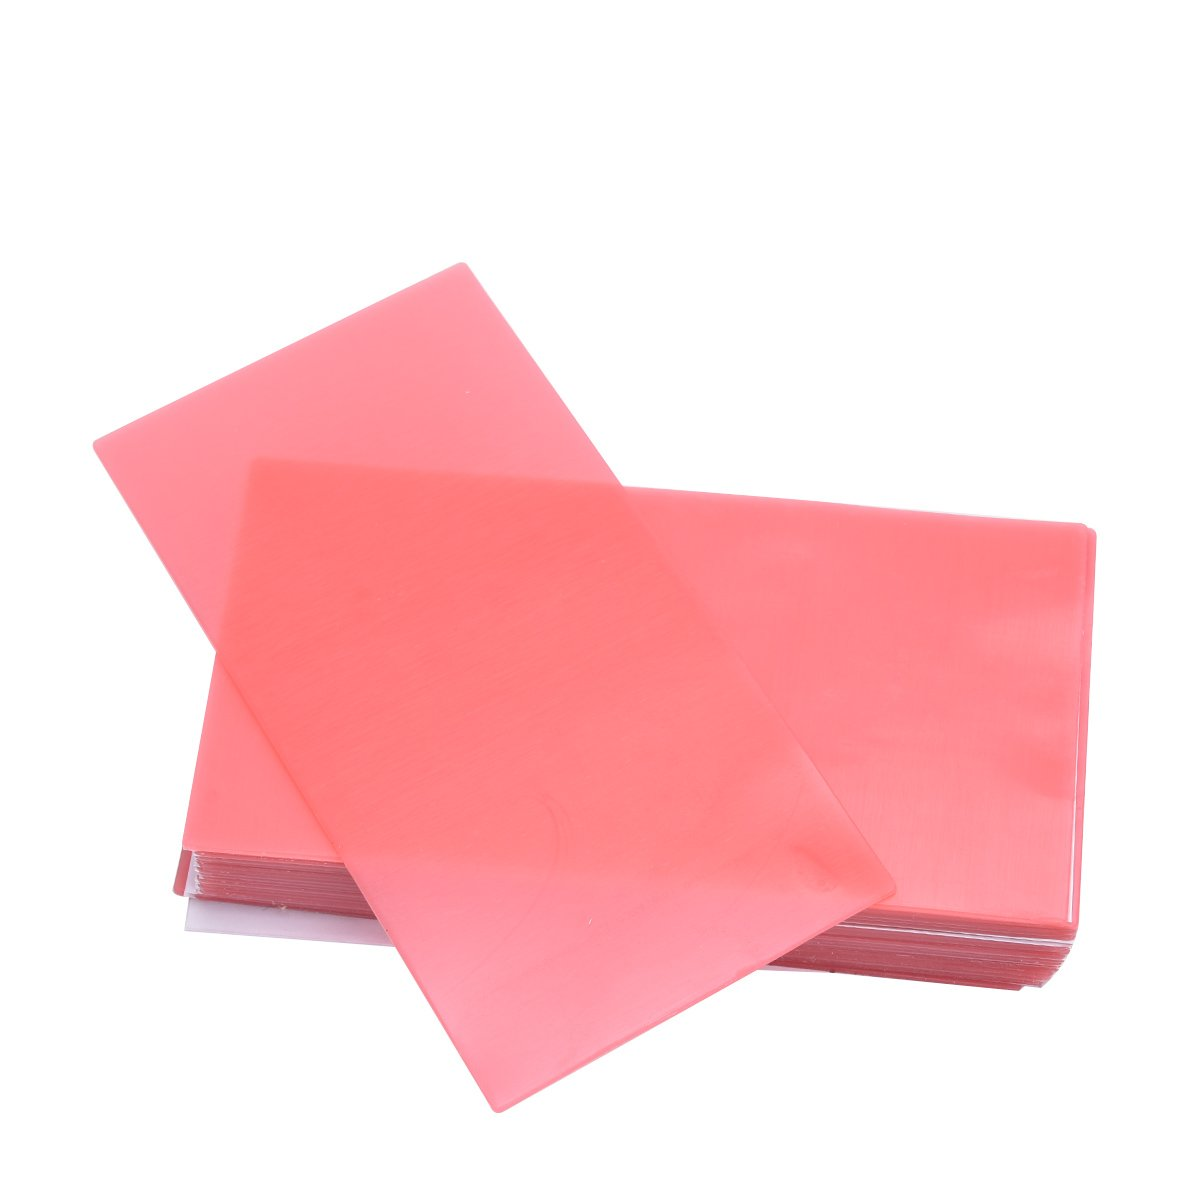 Annhua 20PCS Dental Lab Base Plate Wax Orthodontic Normal Type Red Utility Wax Dental Wax Sheets Supply